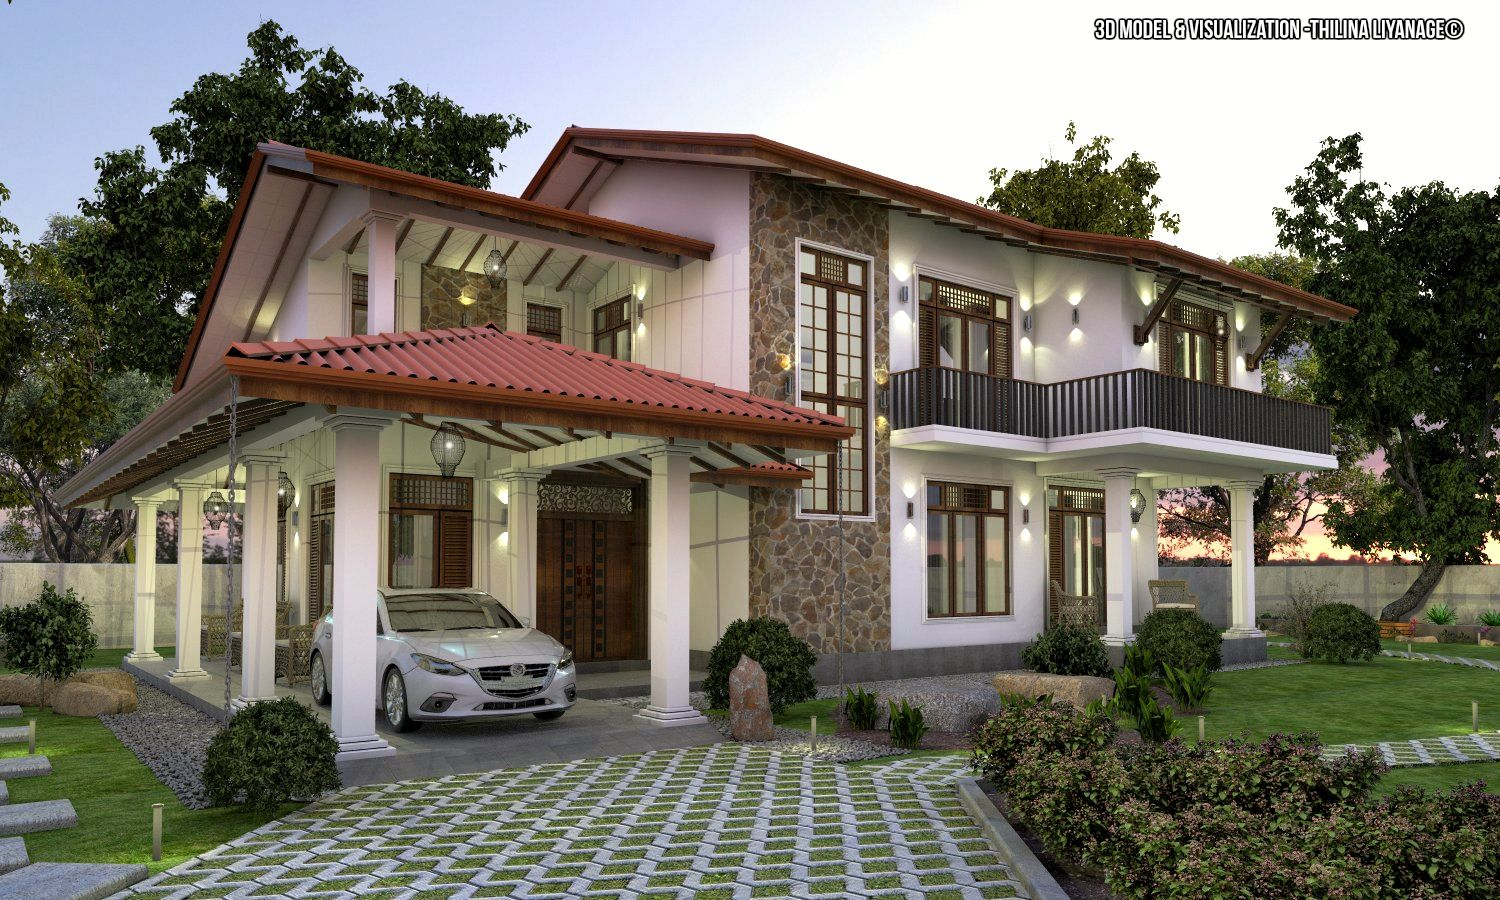 Proposed House at Nittambuwa,Sri lanka House including car ...